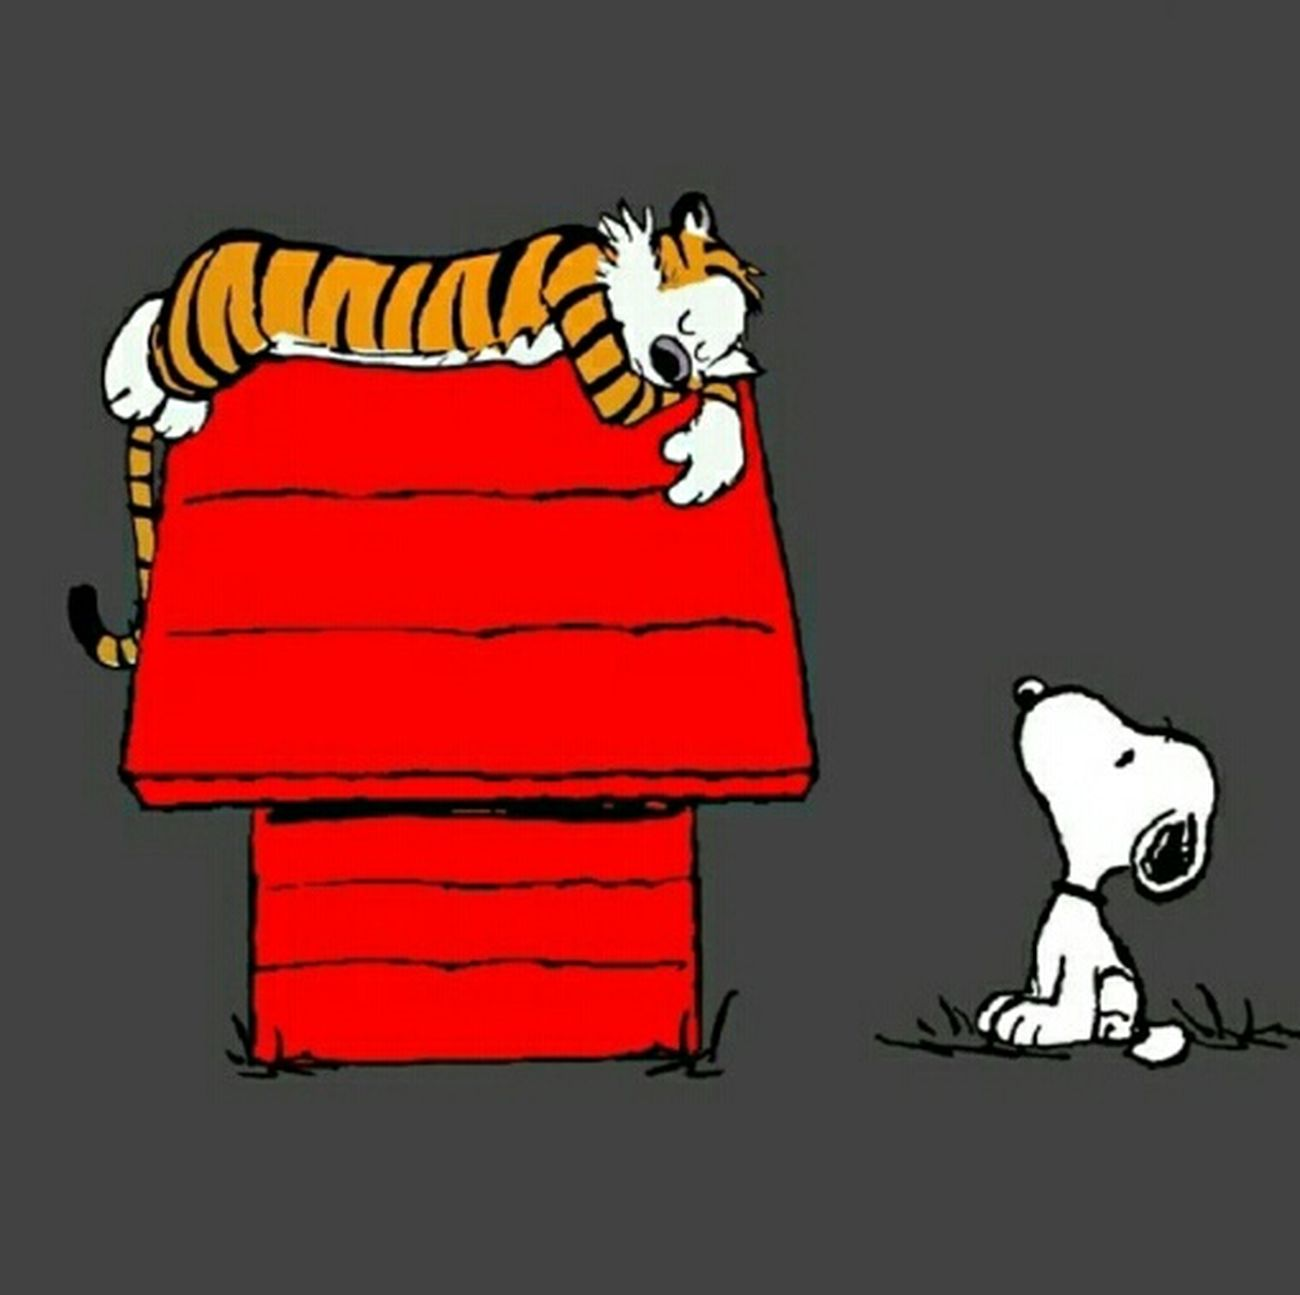 Snoopy Hobbes Calvin And Hobbes Peanuts 💓